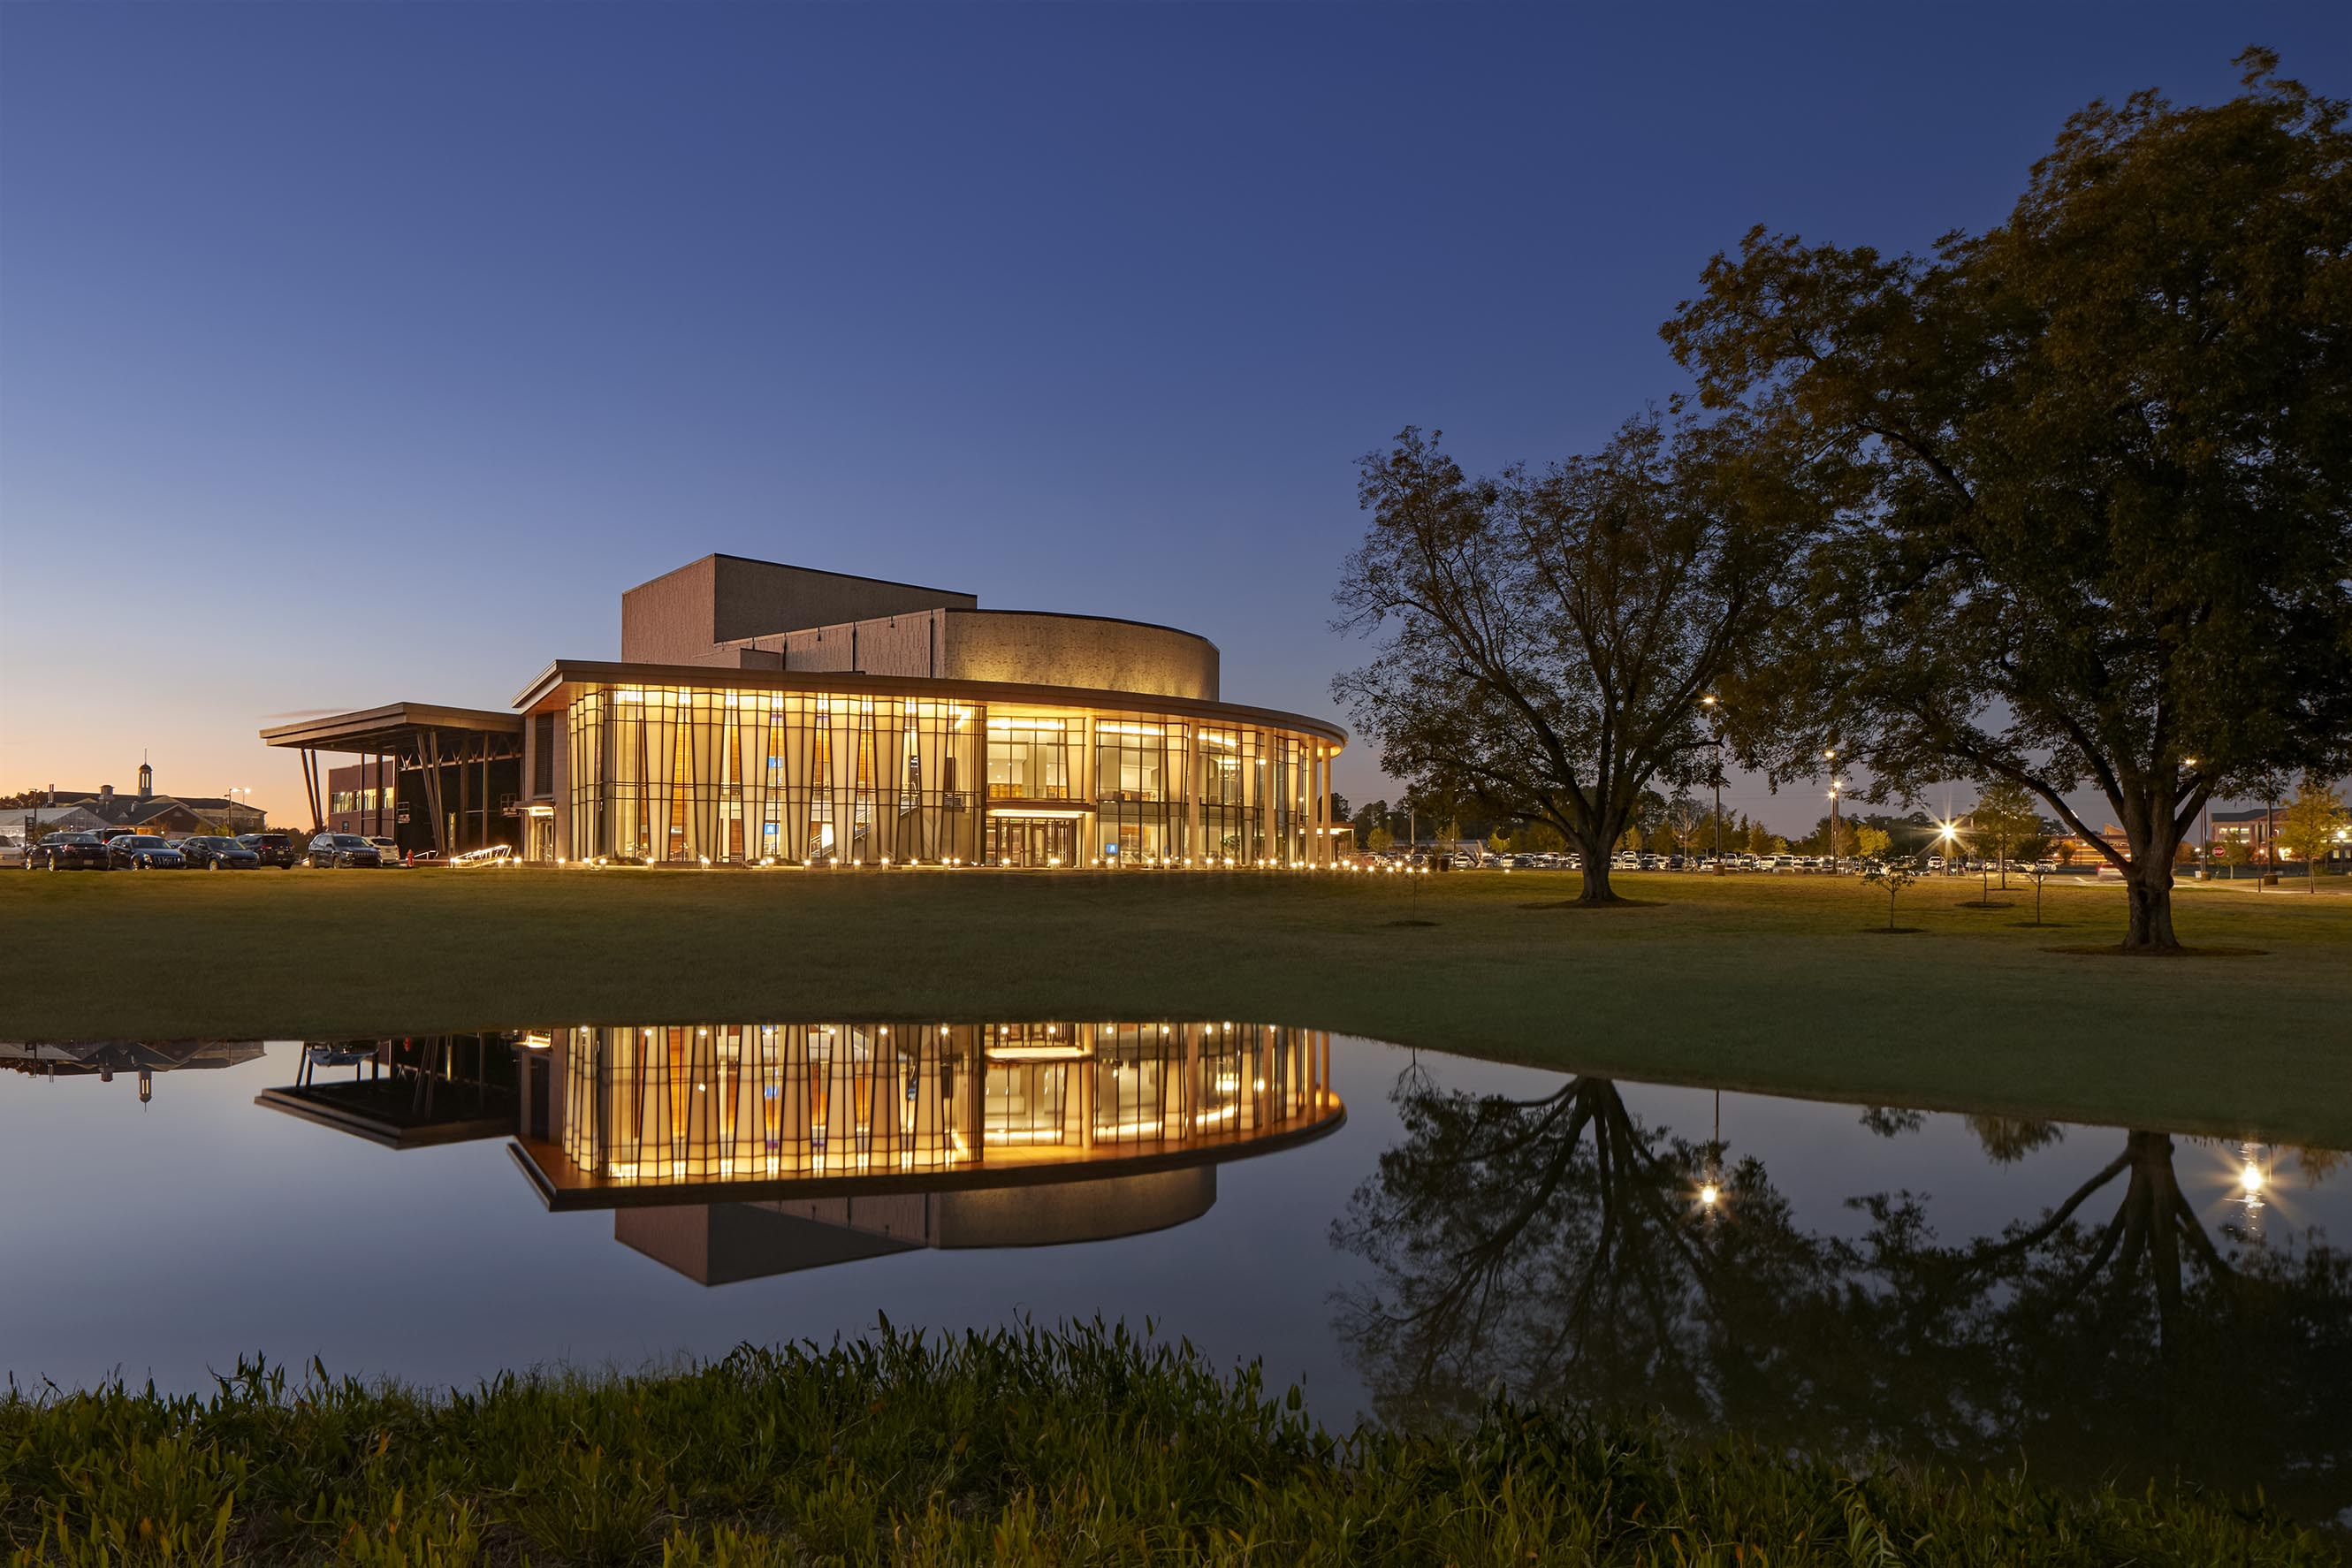 Auburn University, Jay & Susie Gogue Performing Arts Center